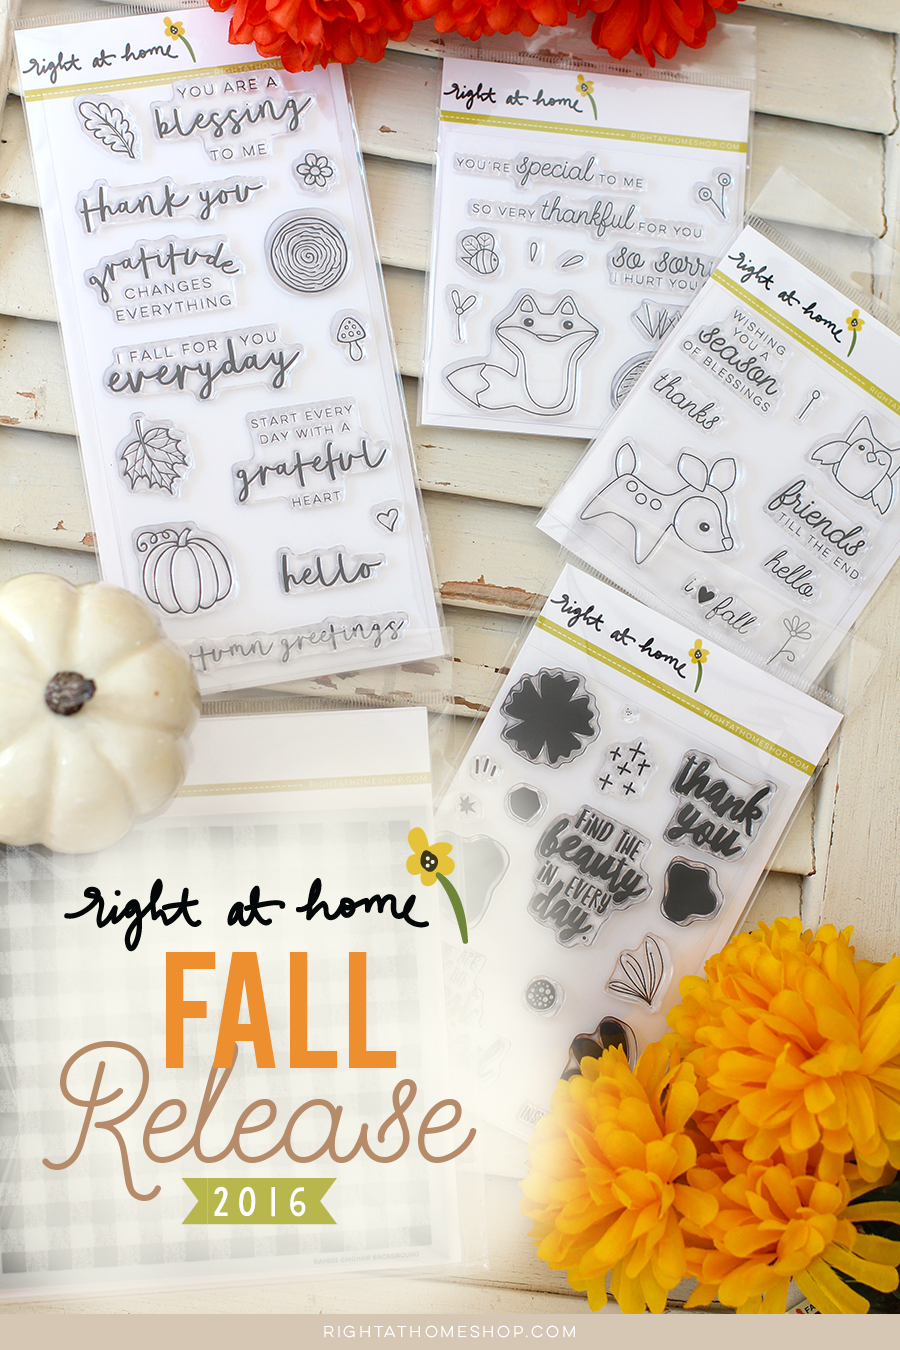 Right at Home Stamps Fall & Holiday 2016 Release Now Available // rightathomeshop.com